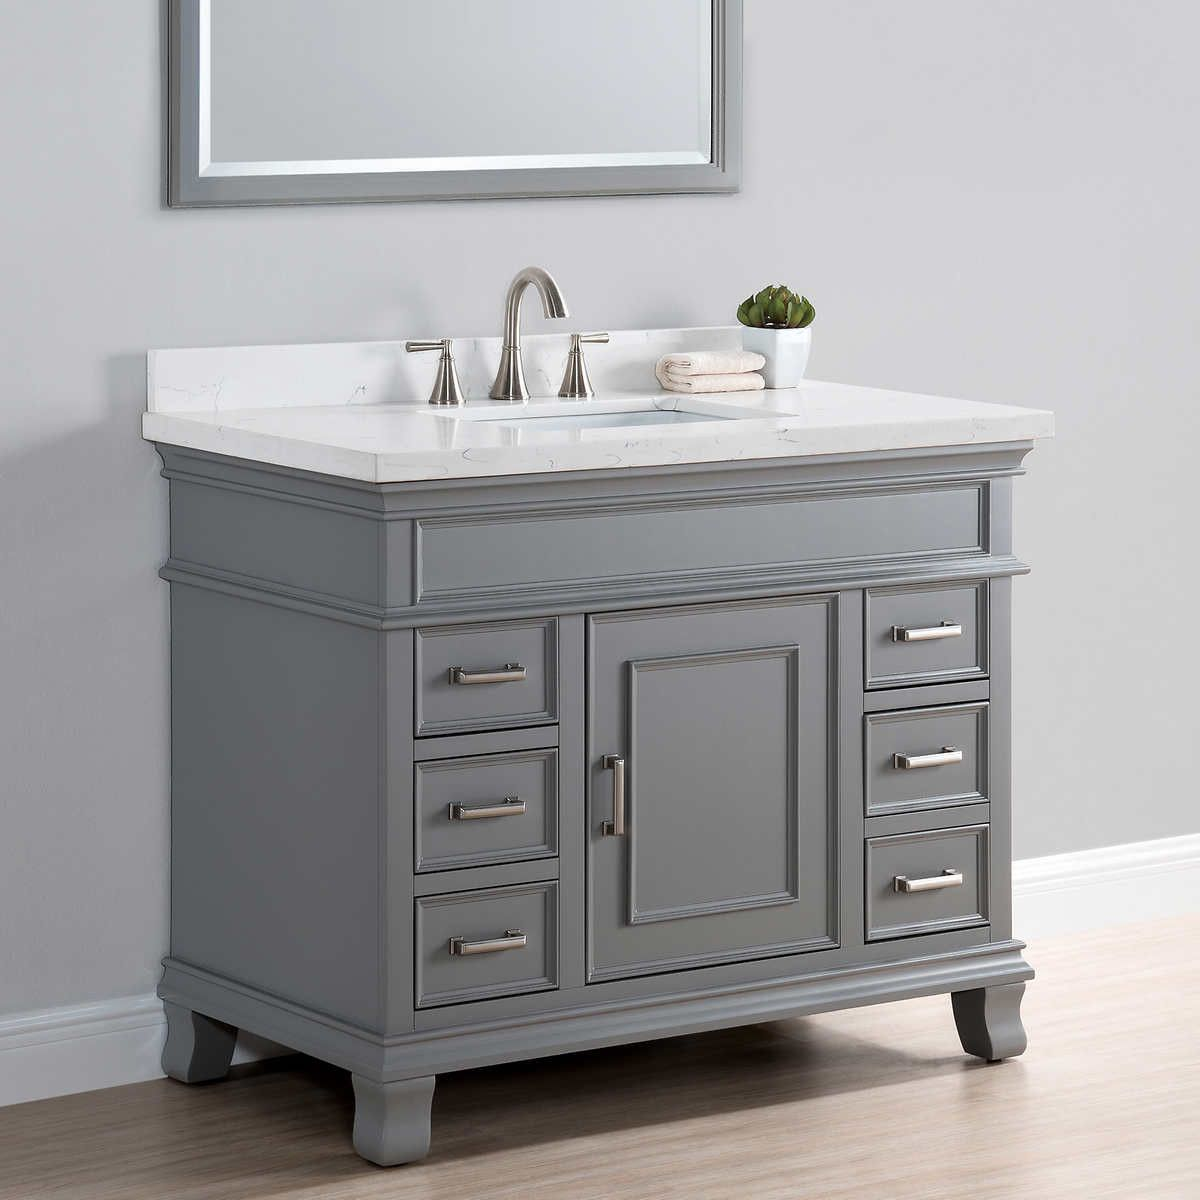 2019 42 Inch Vanity Cabinets For Bathrooms Small Kitchen Island Ideas With Seating Check More At